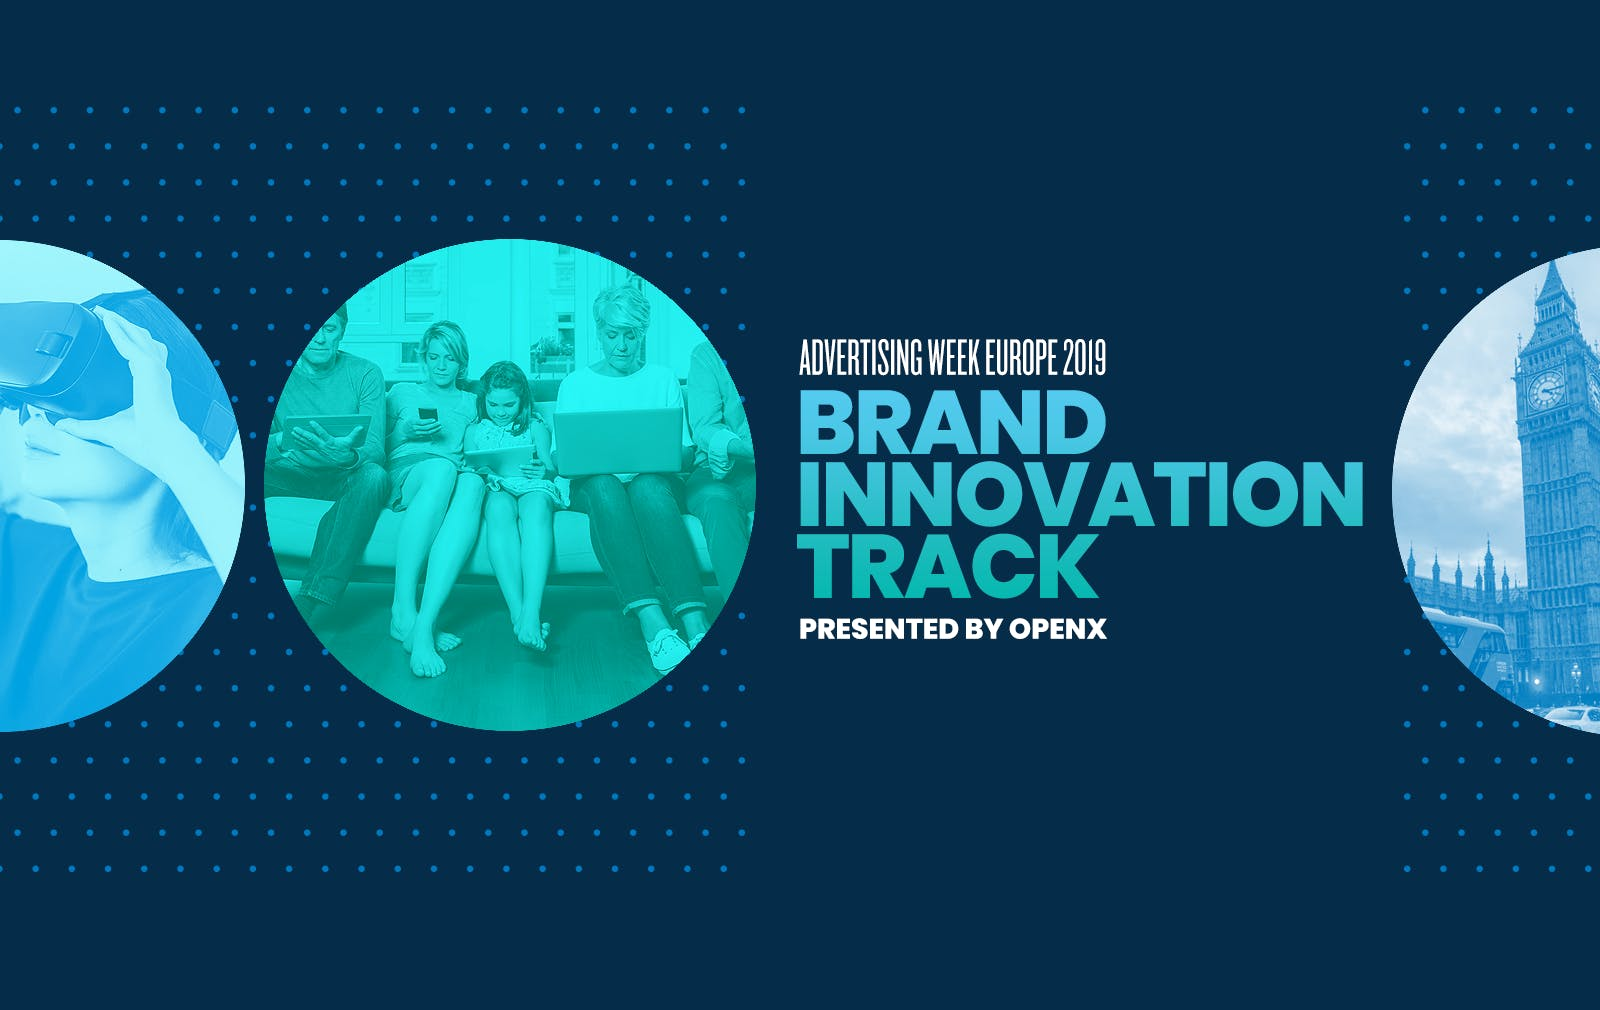 OpenX at Advertising Week Europe 2019